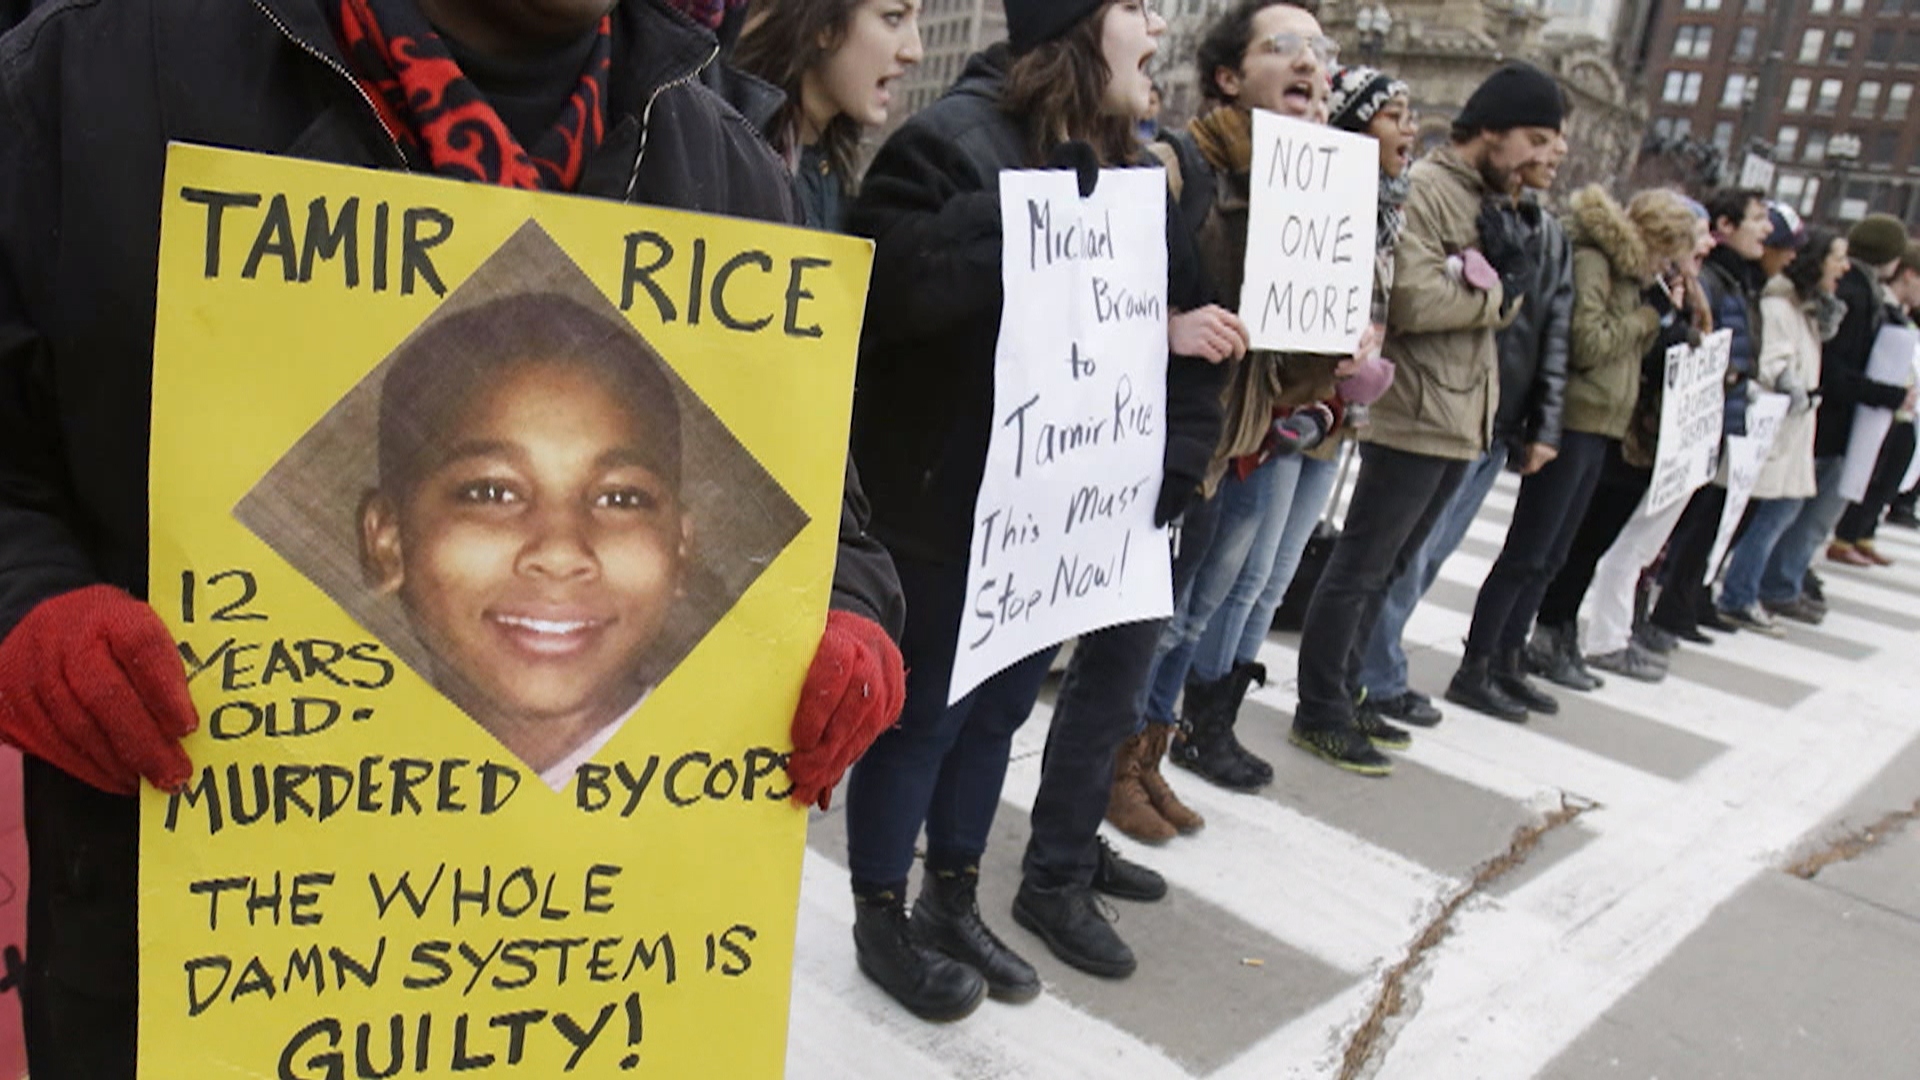 Attorneys for Tamir Rice Family Want Own Experts to Testify